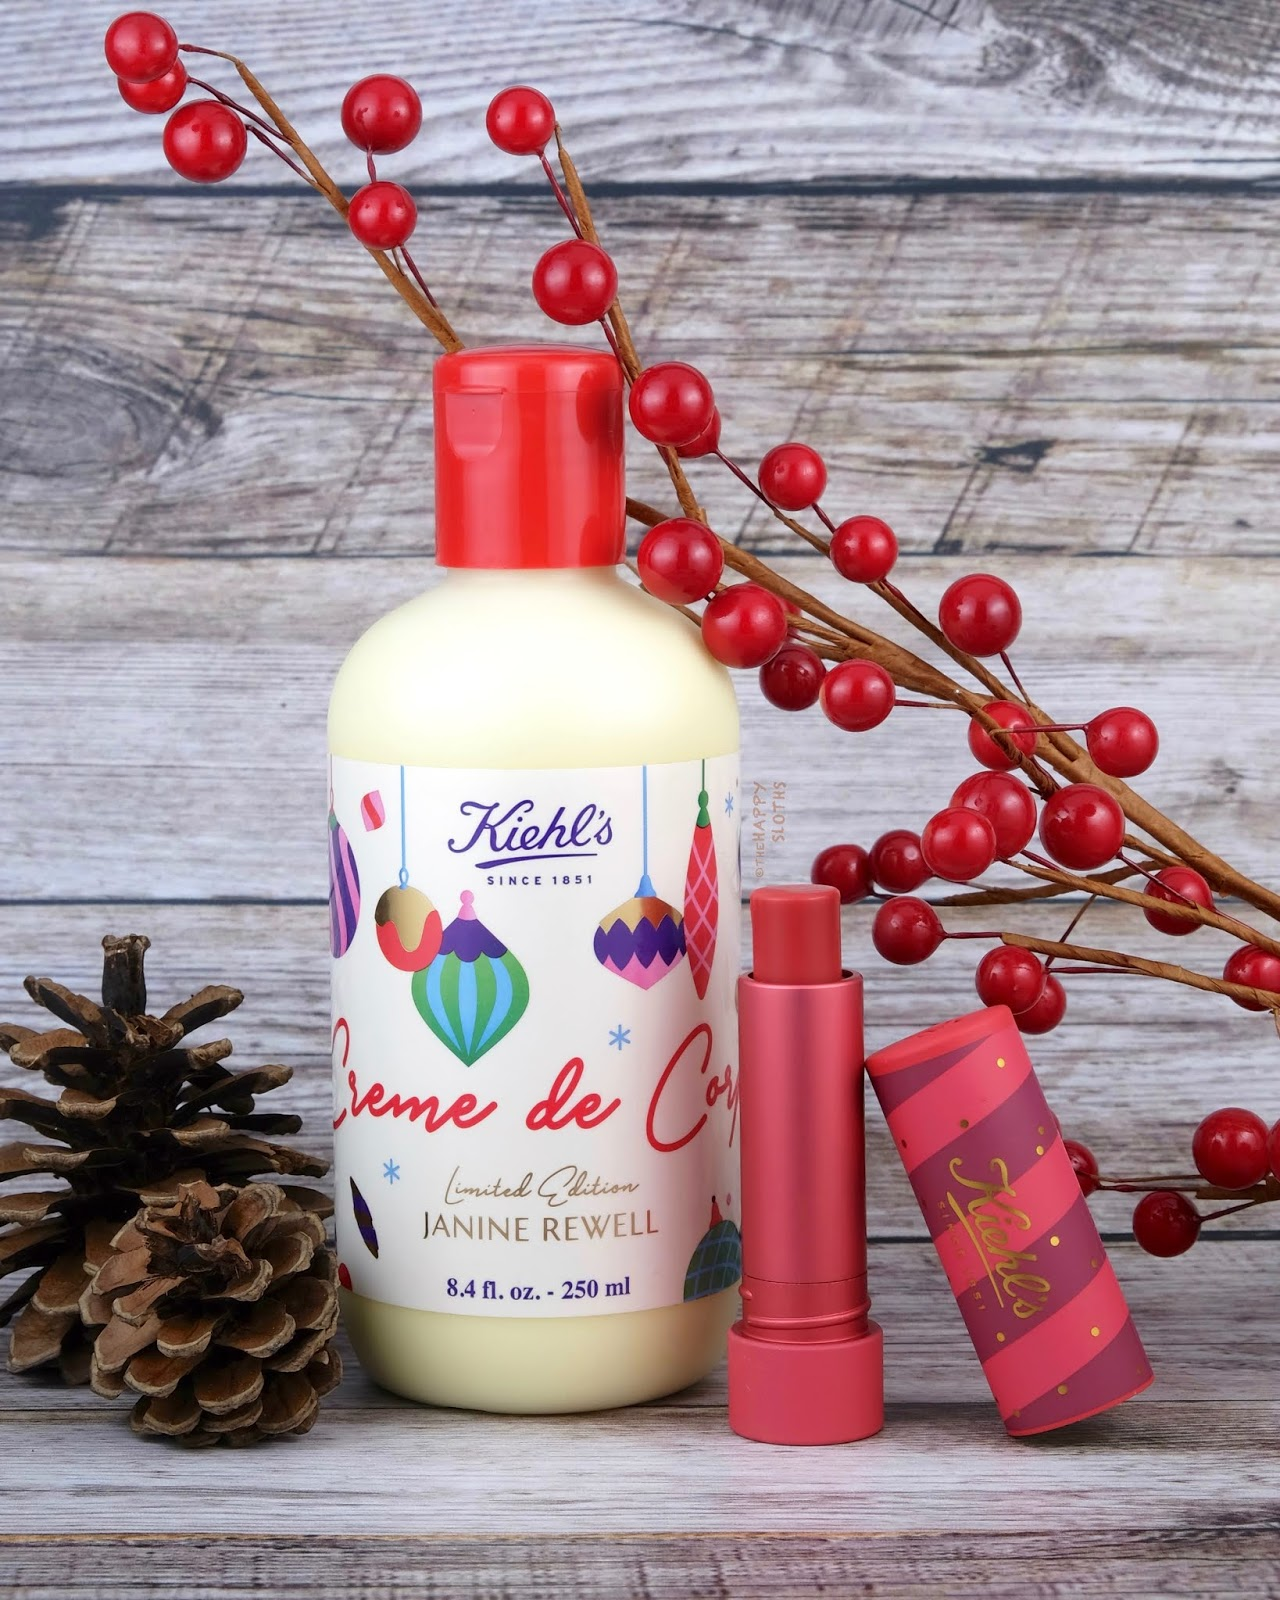 Kiehl's | Holiday 2019 Creme de Corps & Butterstick Lip Treatment: Gift Guide